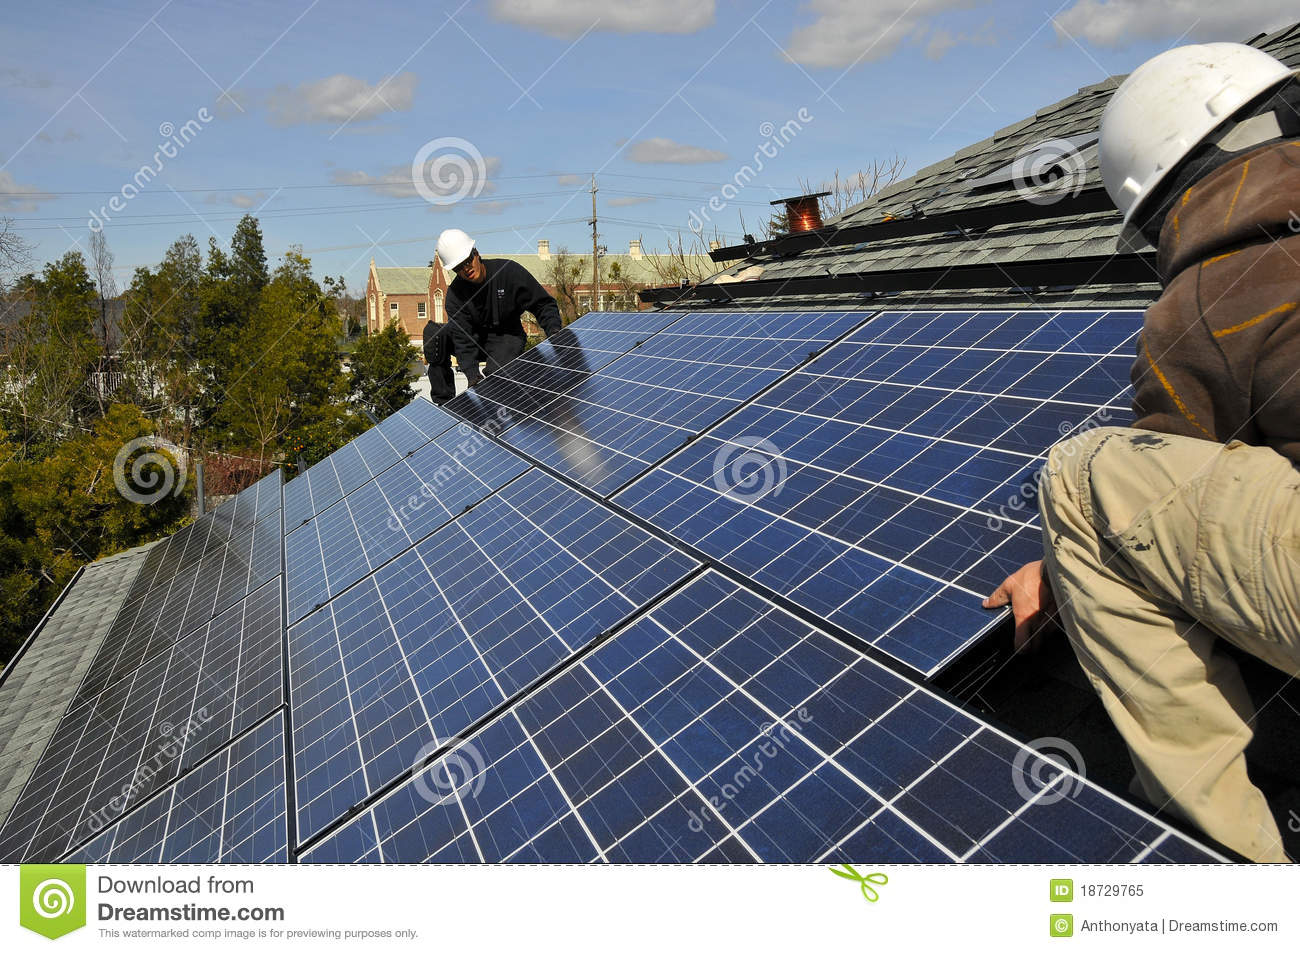 Solar Panel Installers Royalty Free Stock Photo - Image: 18729765